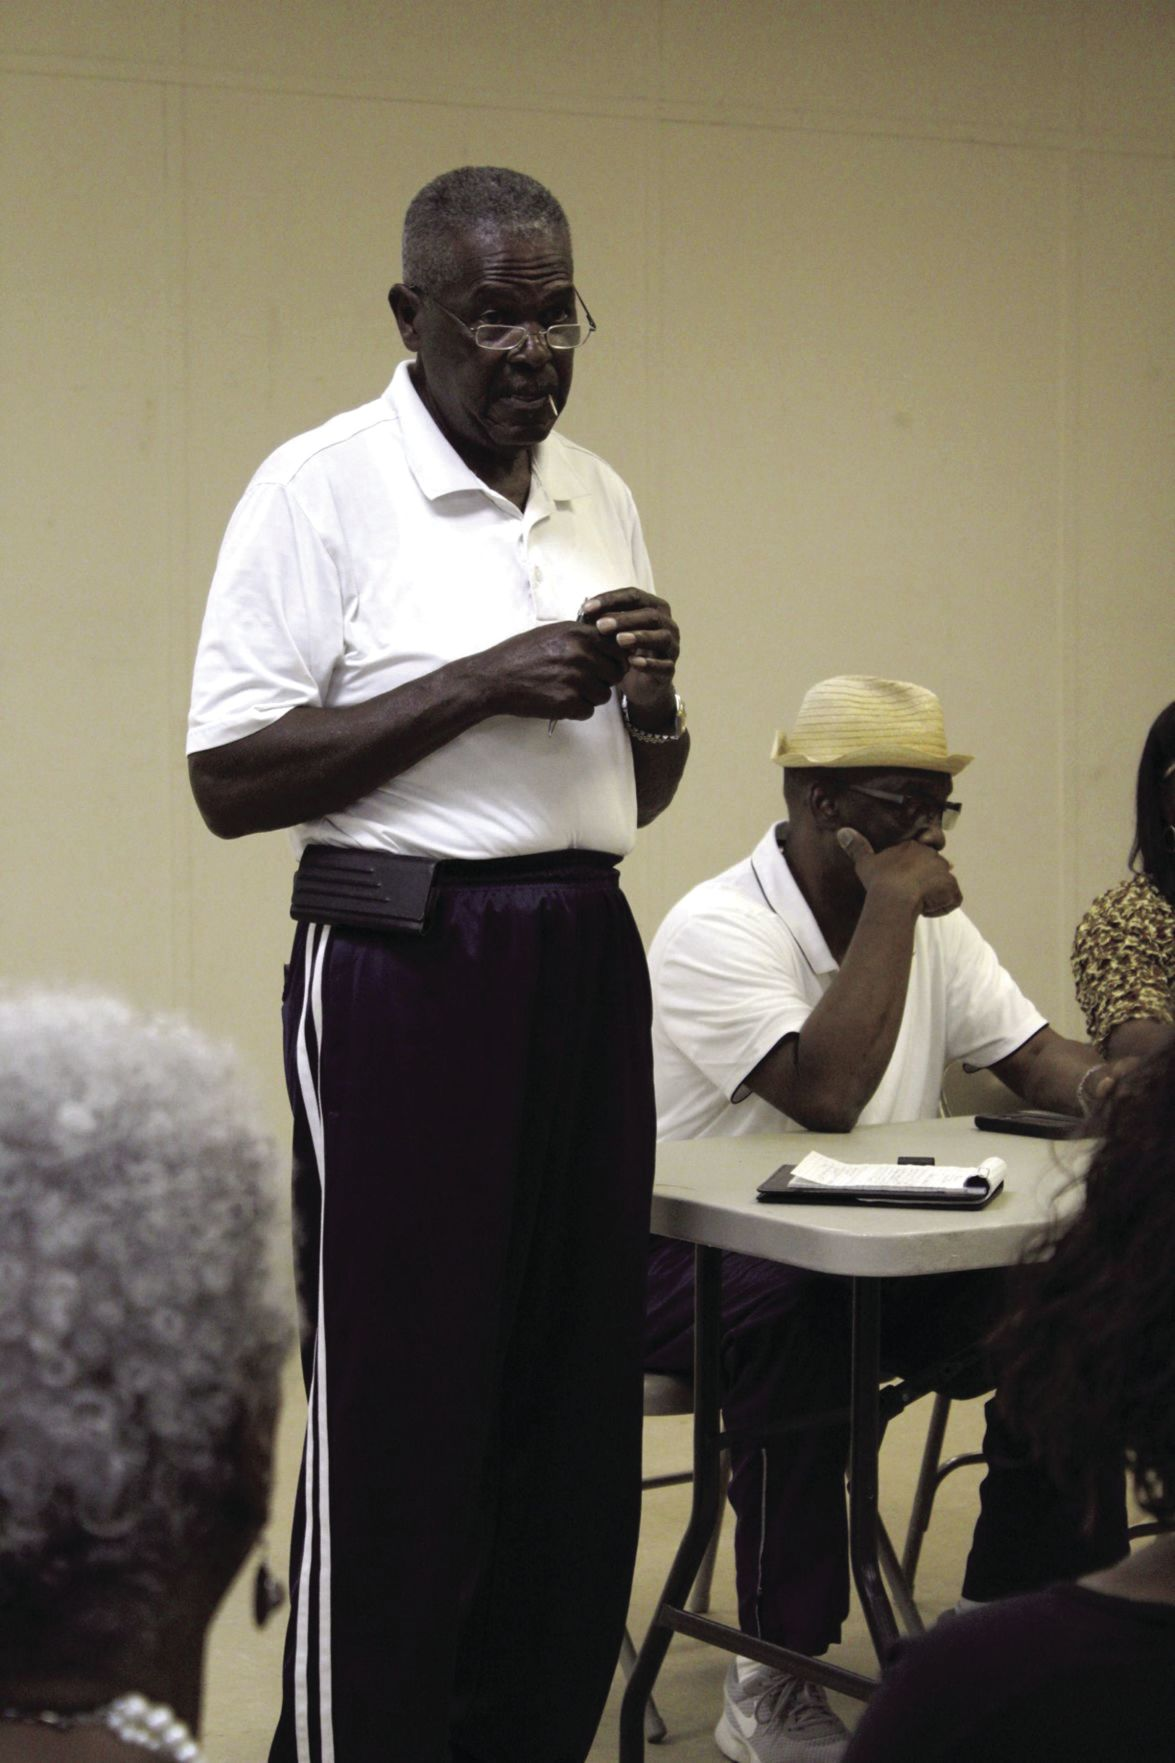 John Smith speaks at a June 3 meeting about his opposition to a recycling plant being added to Martin Luther King Jr. Drive.